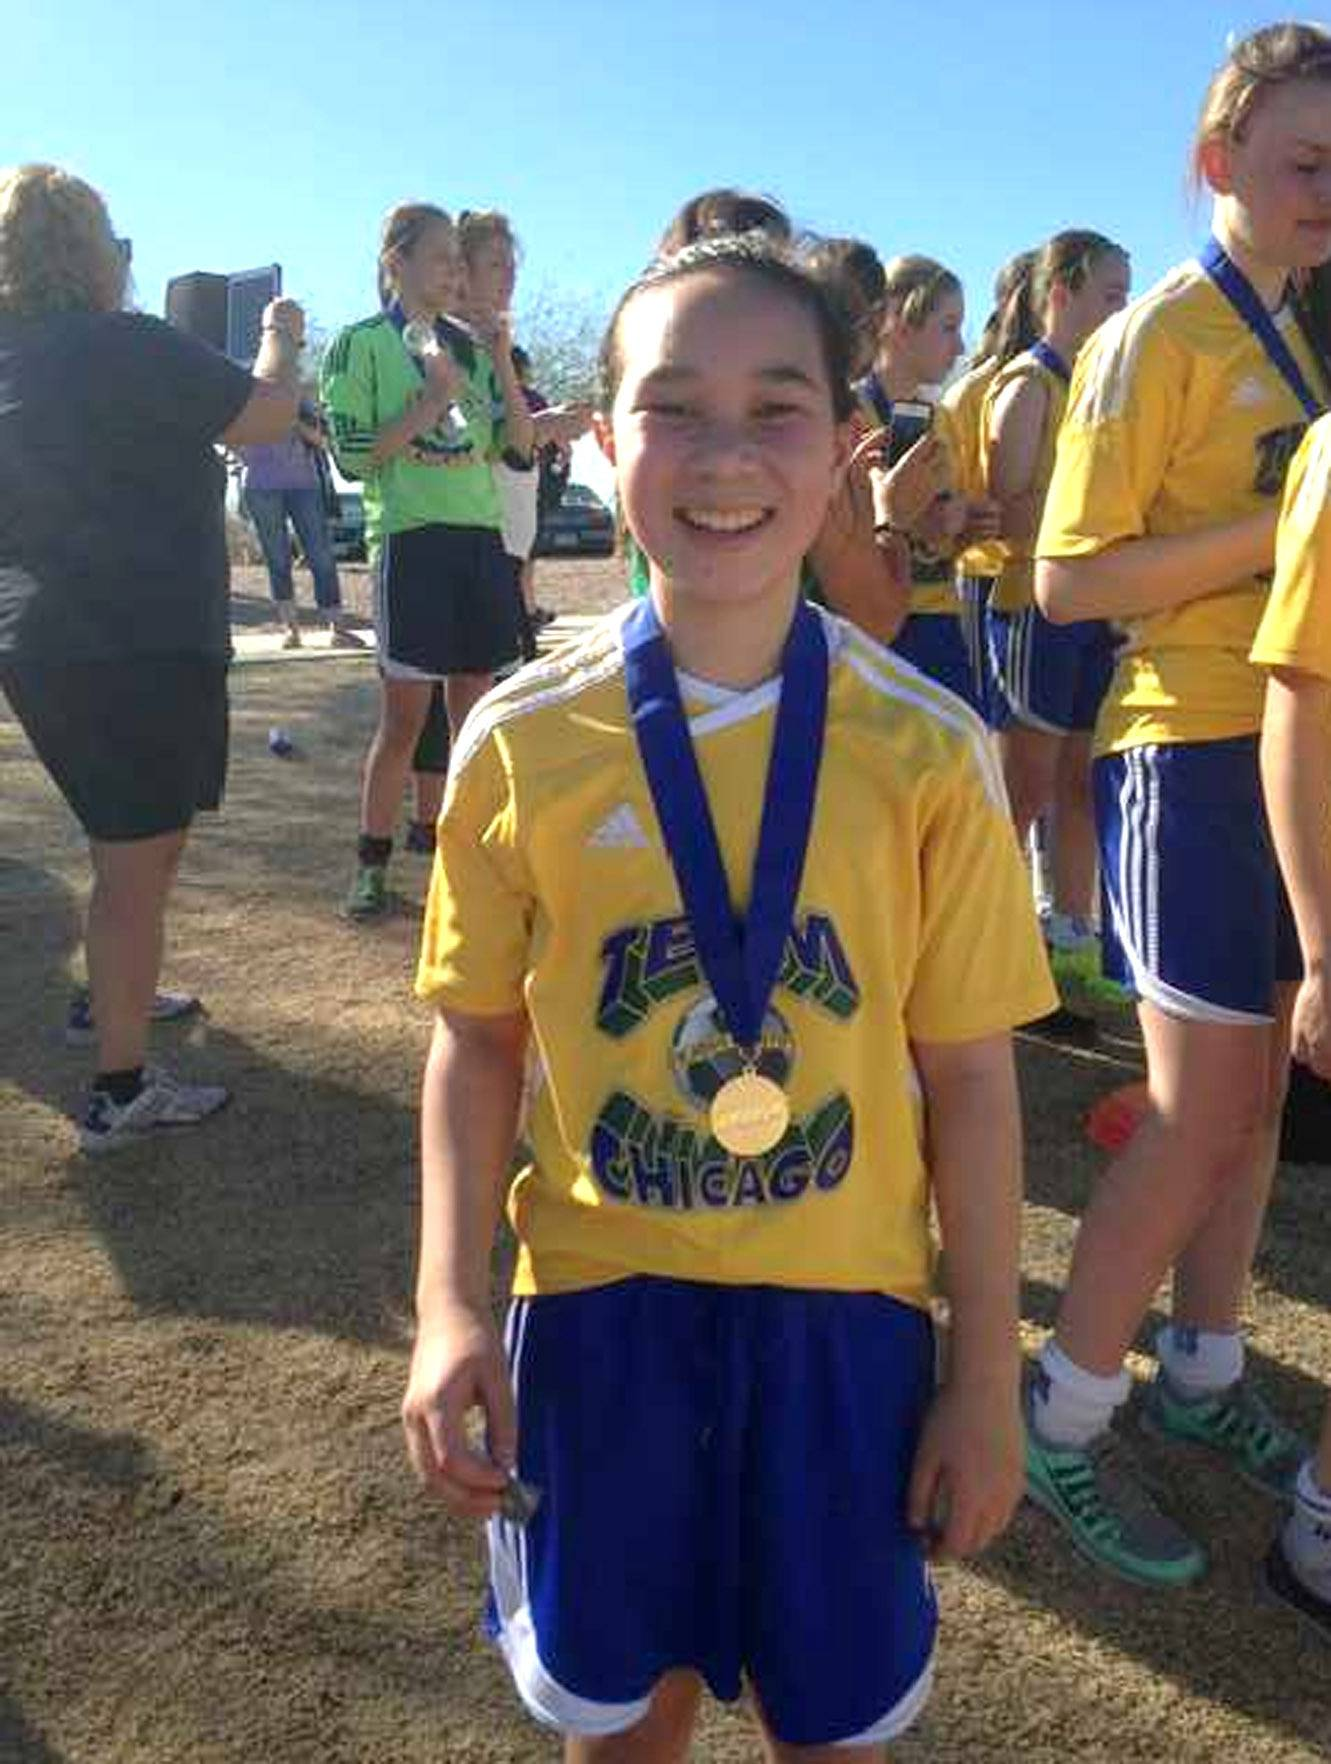 Courtesy of Ken SwedaErin Sweda, 13, of Naperville, will be competing at a soccer tournament in Barcelona this month after being chosen as one of 12 players from the area and 48 from the country to make the team.